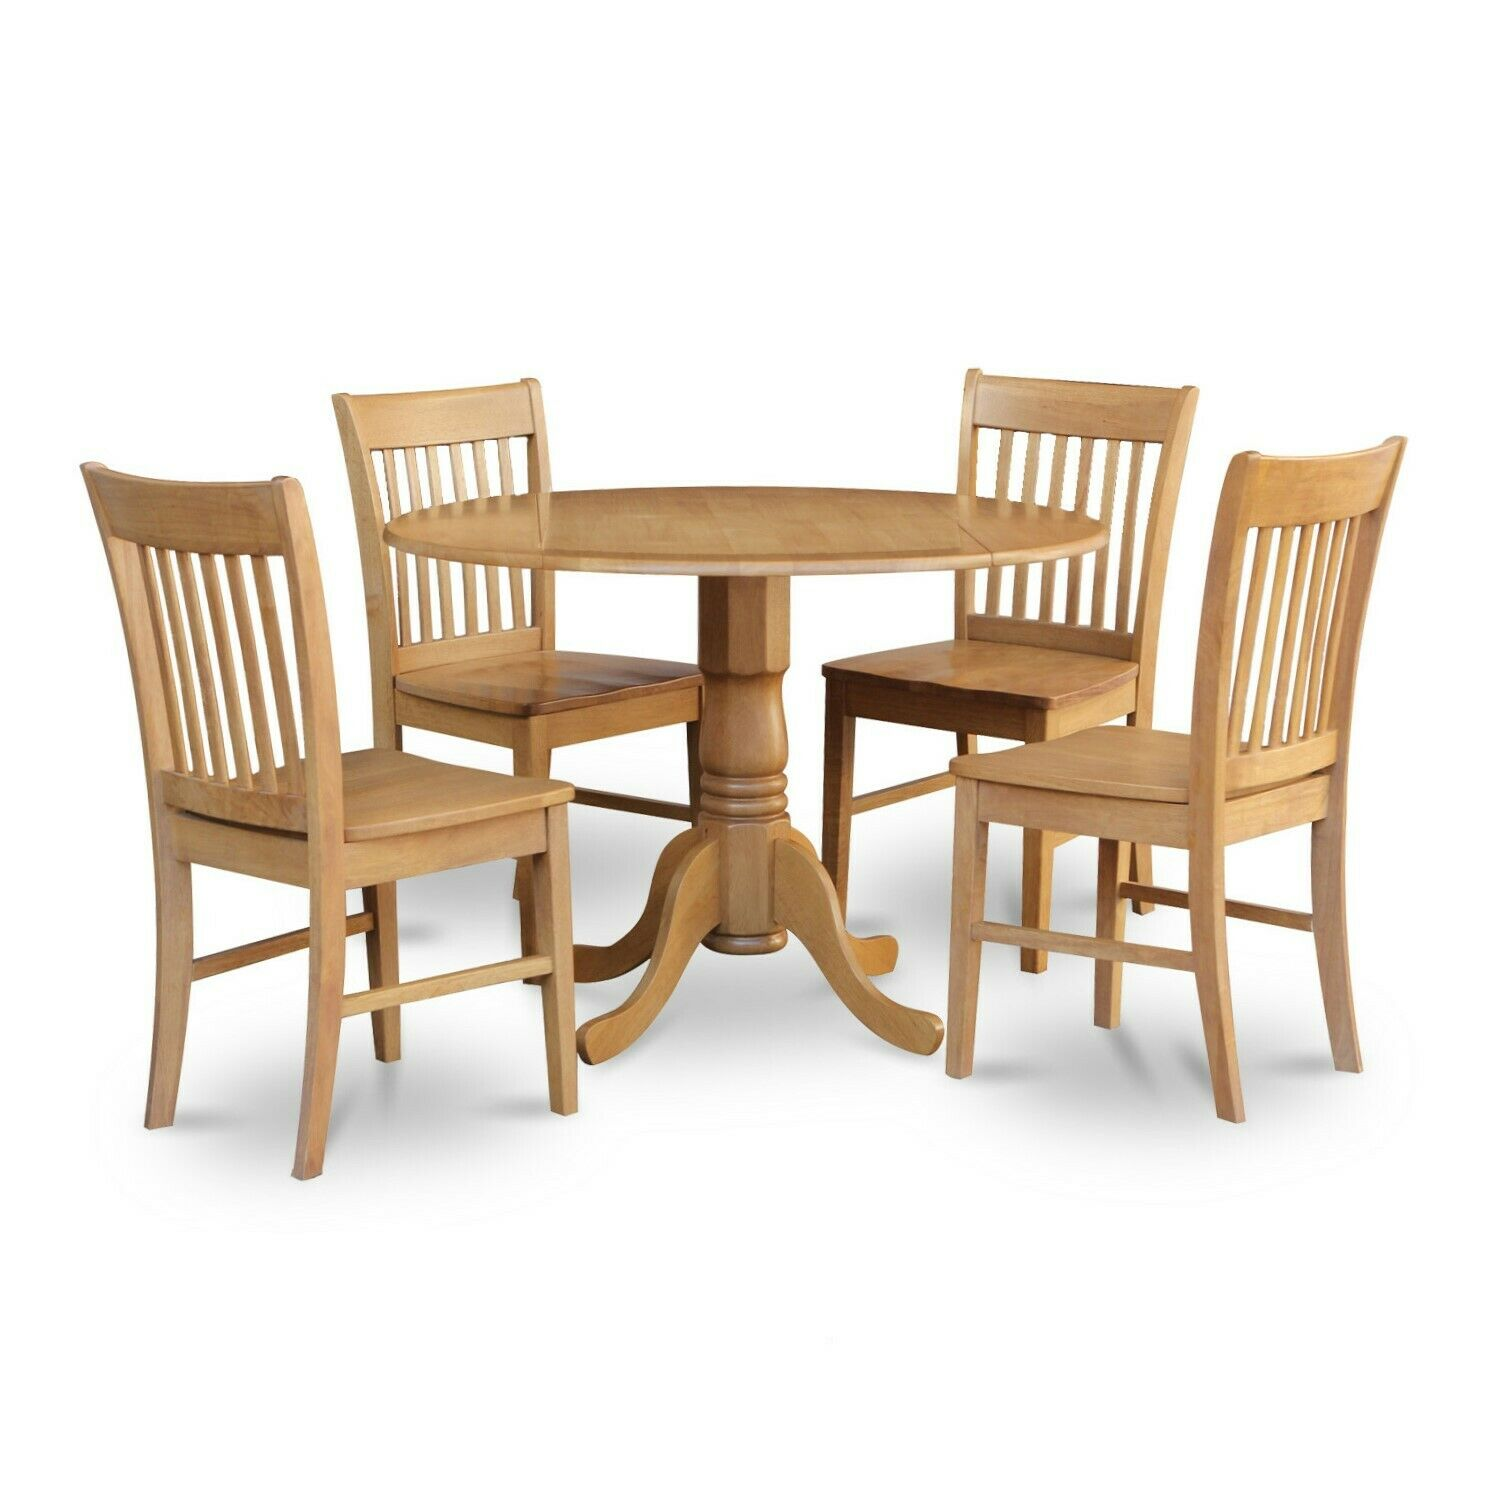 Light Oak Kitchen Chairs Similiar Light Wood Kitchen Chairs Keywords